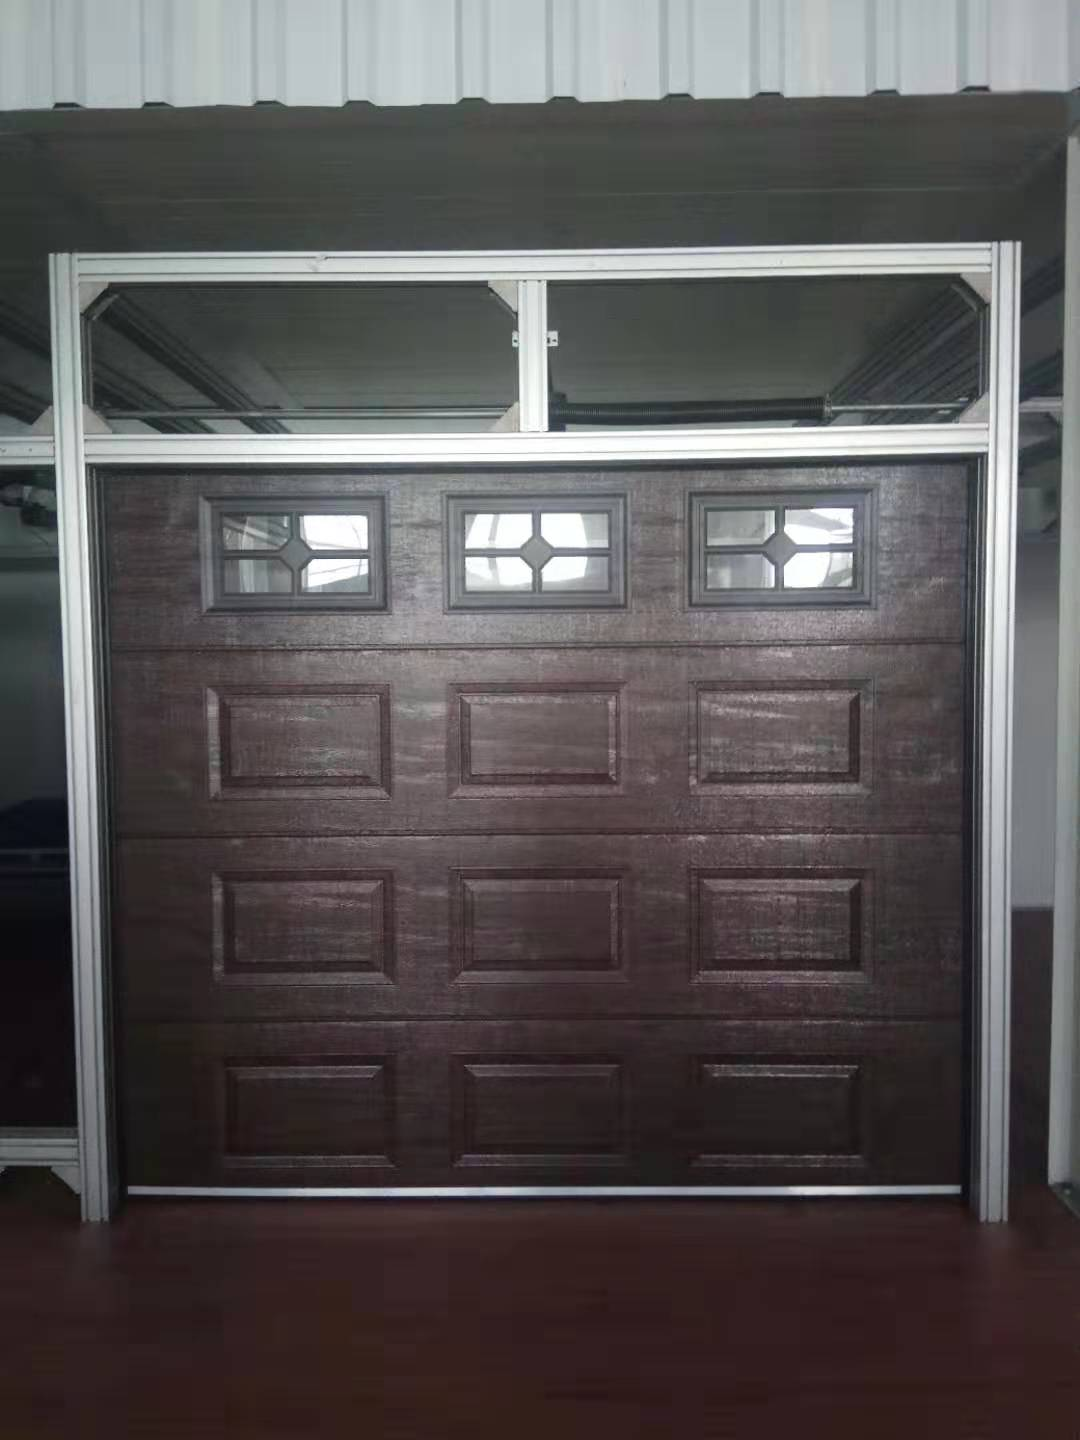 What is the average life of a garage door?